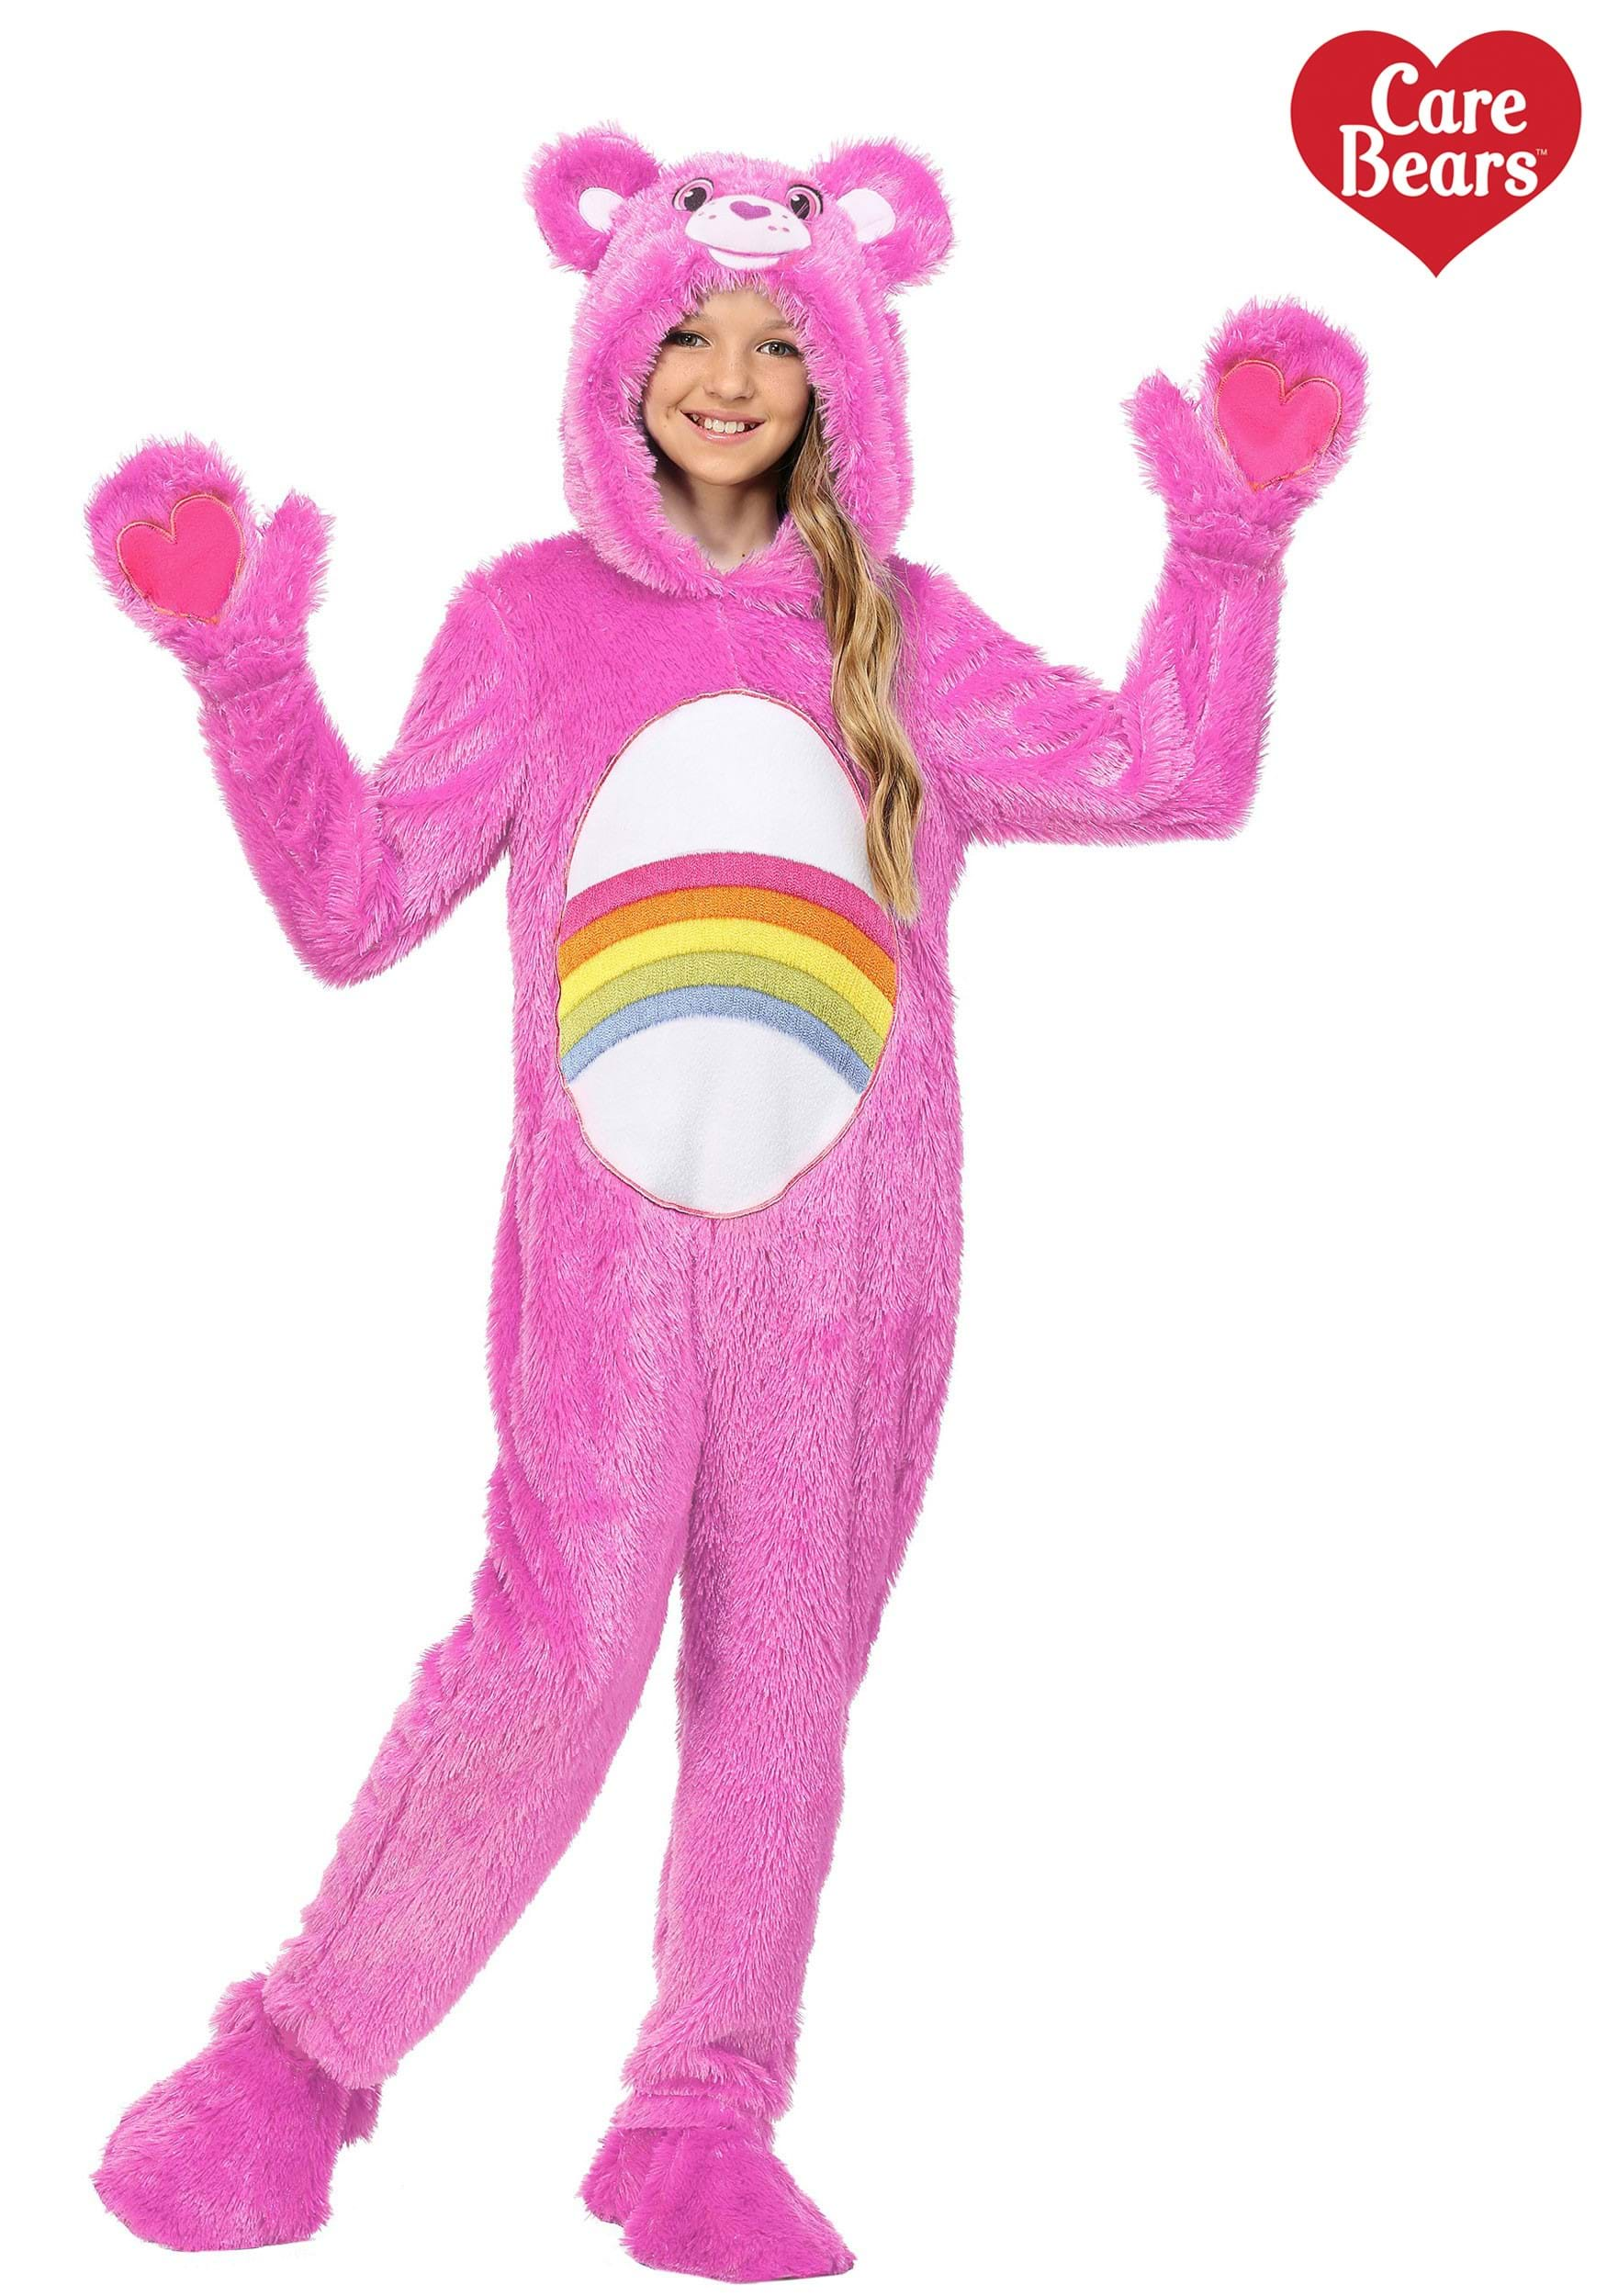 Care Bears Child Classic Cheer Bear Costume  sc 1 st  Halloween Costumes & Care Bears Costumes for Adults u0026 Kids - HalloweenCostumes.com